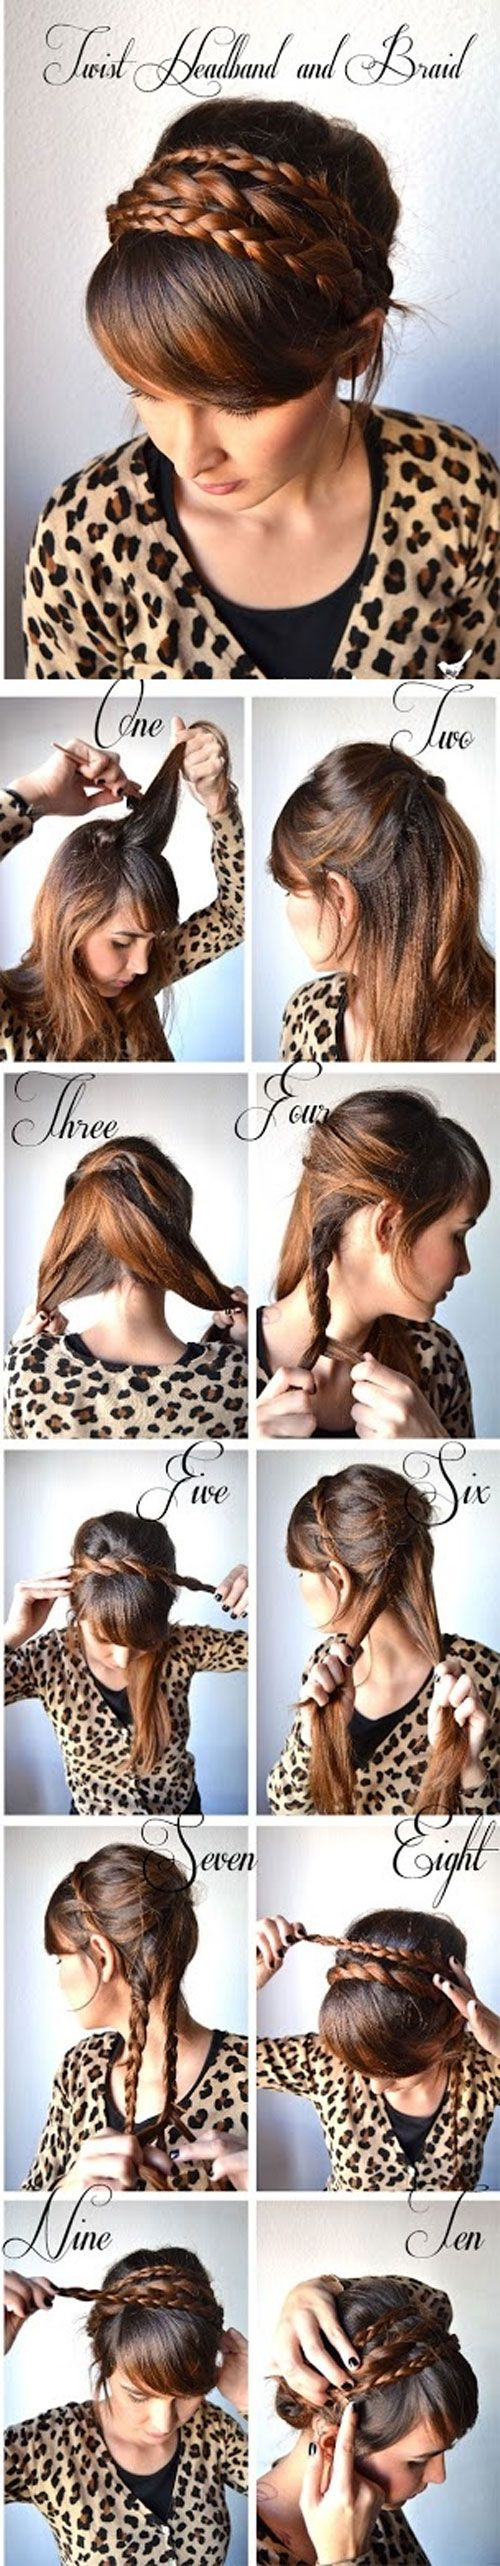 Learn How to Make Twist Hairband and Braid - A DIY Hairstyle that can be ready in a minute